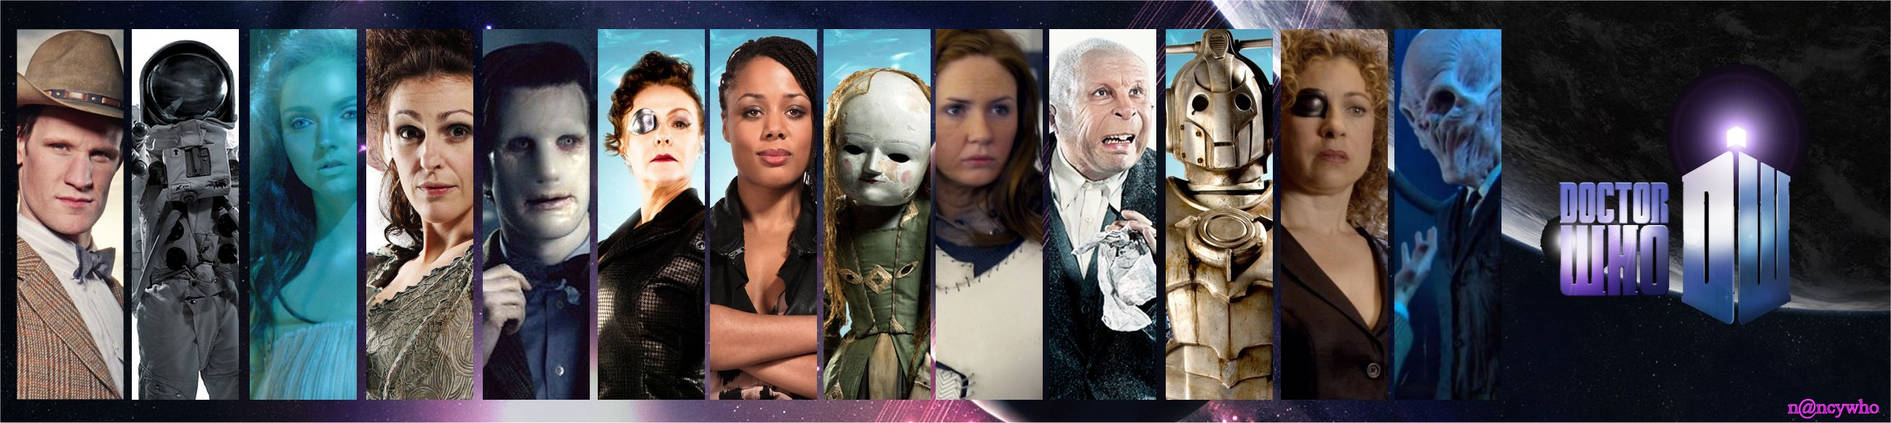 banner Doctor Who series 6